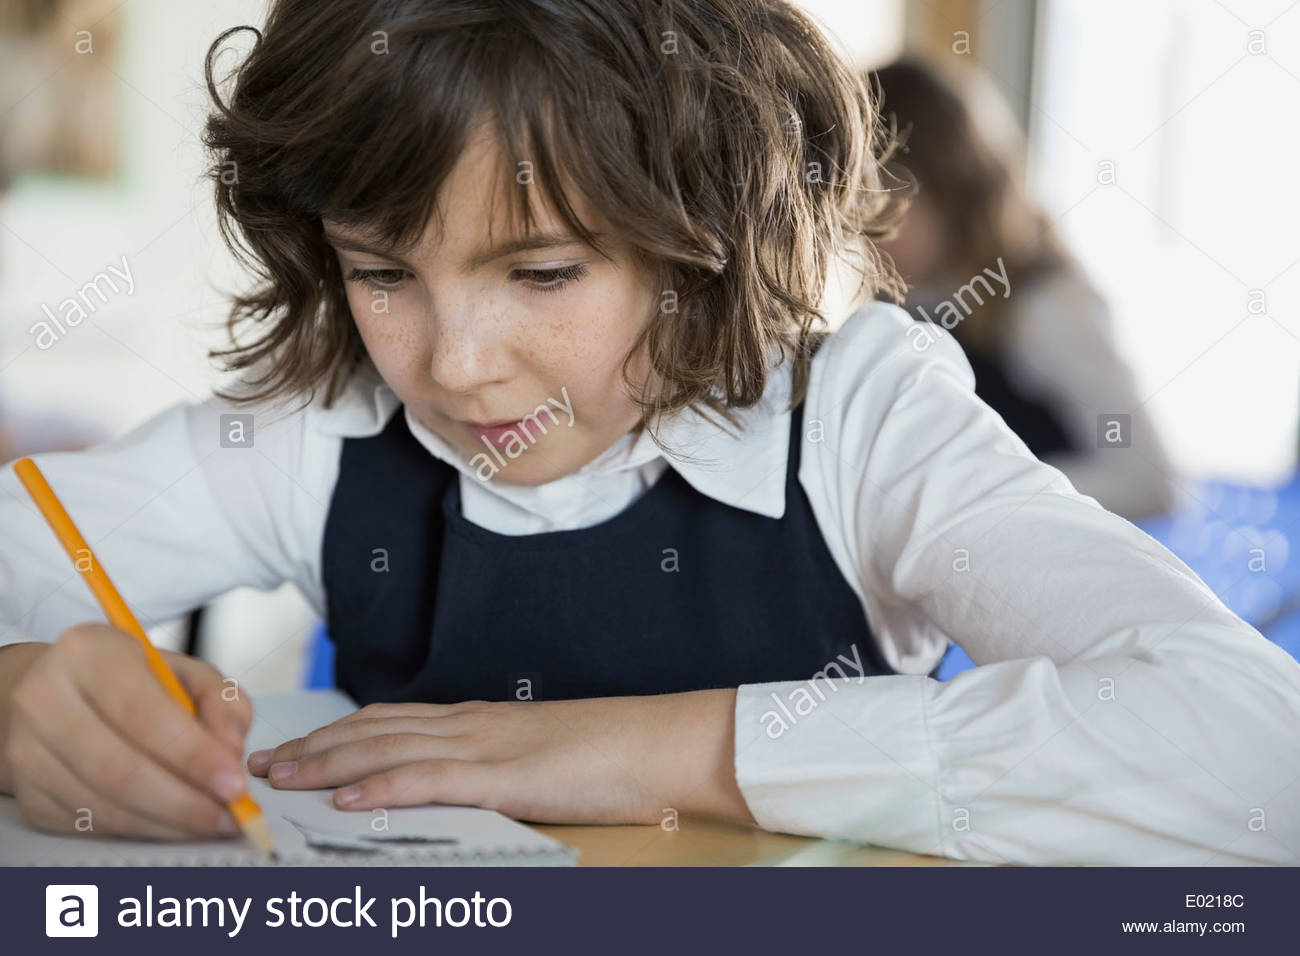 Close up of school girl doing homework - Stock Image